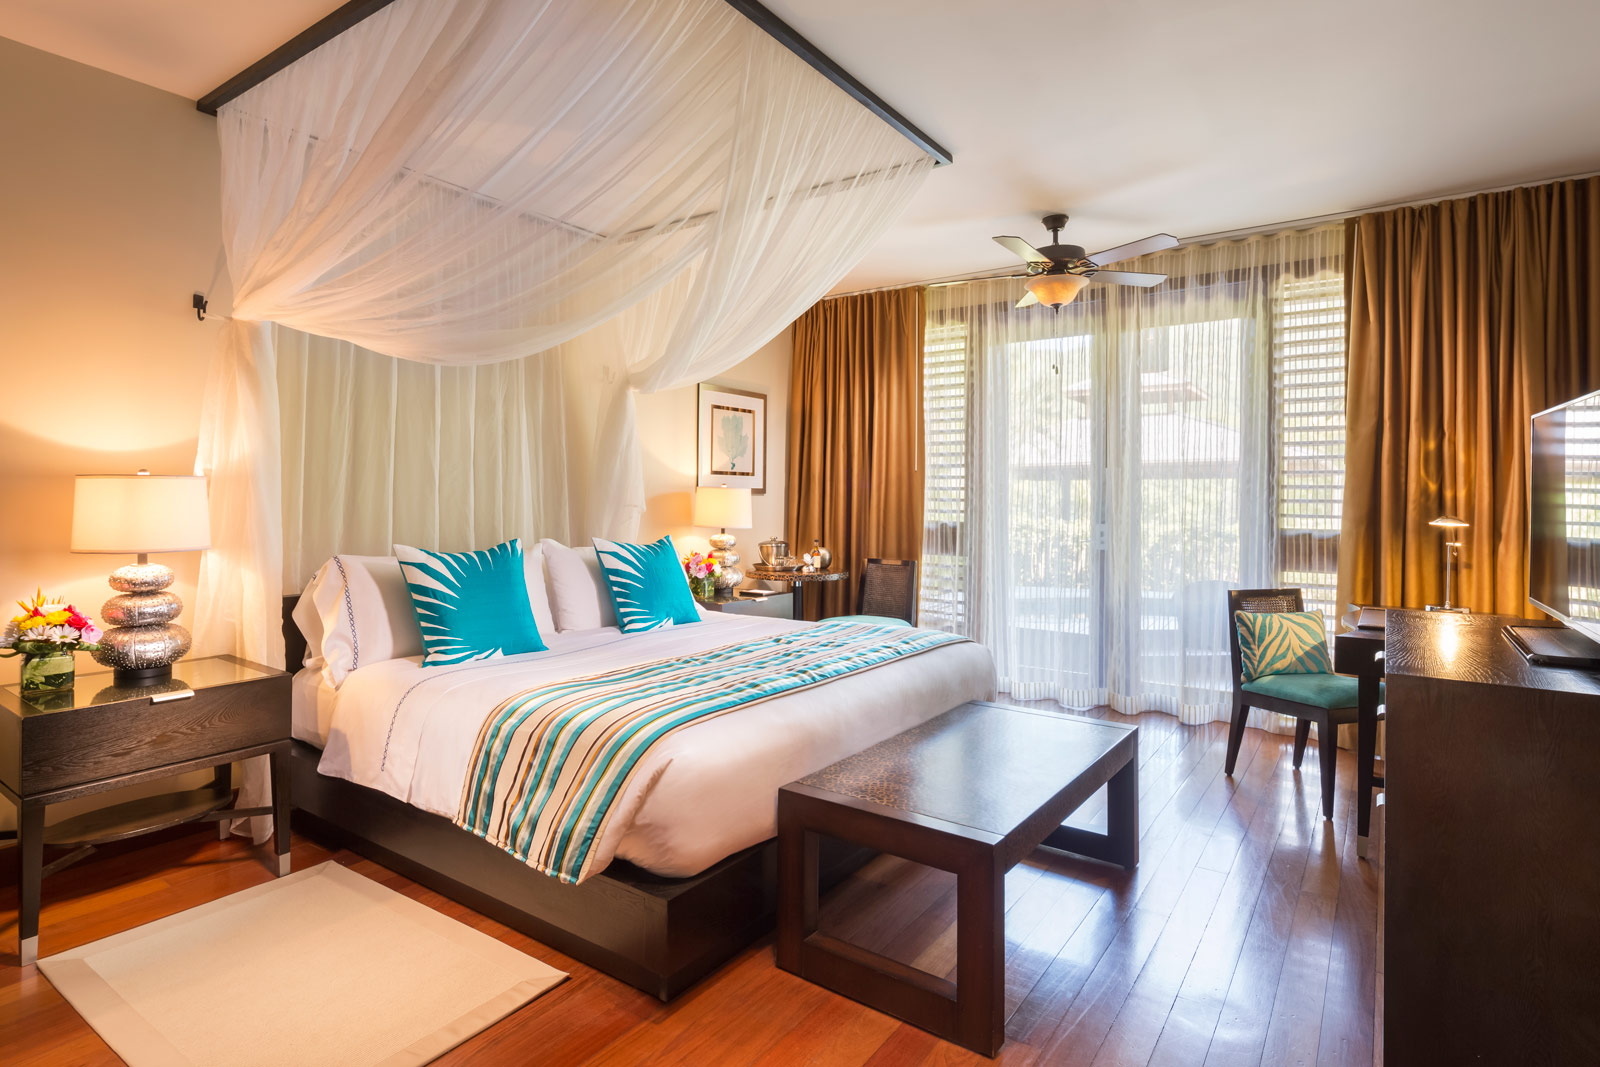 The elegant West Indian-inspired décor ensures both comfort and luxury in equal measures.